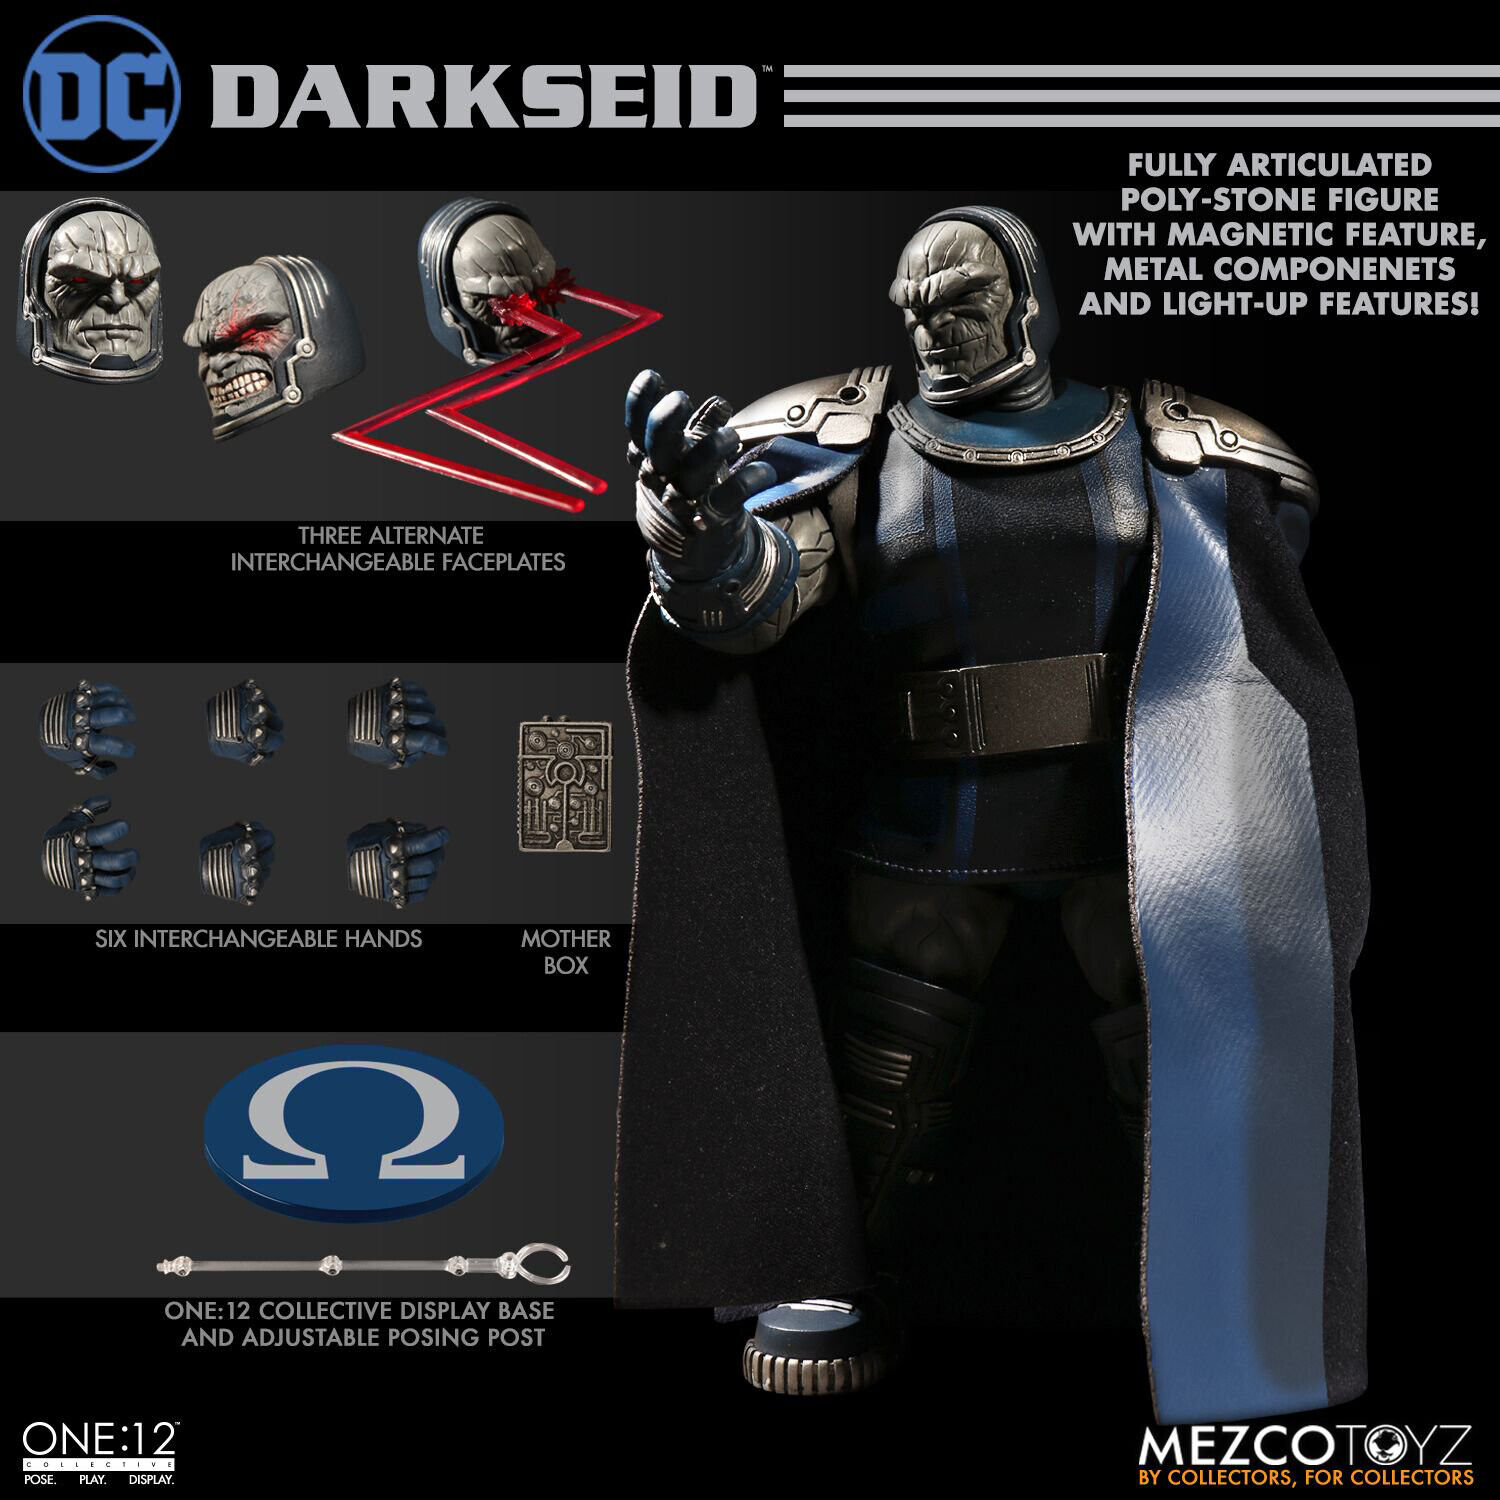 MEZCO DC DARKSEID ONE-12 COLLECTIVE ACTION FIGURE